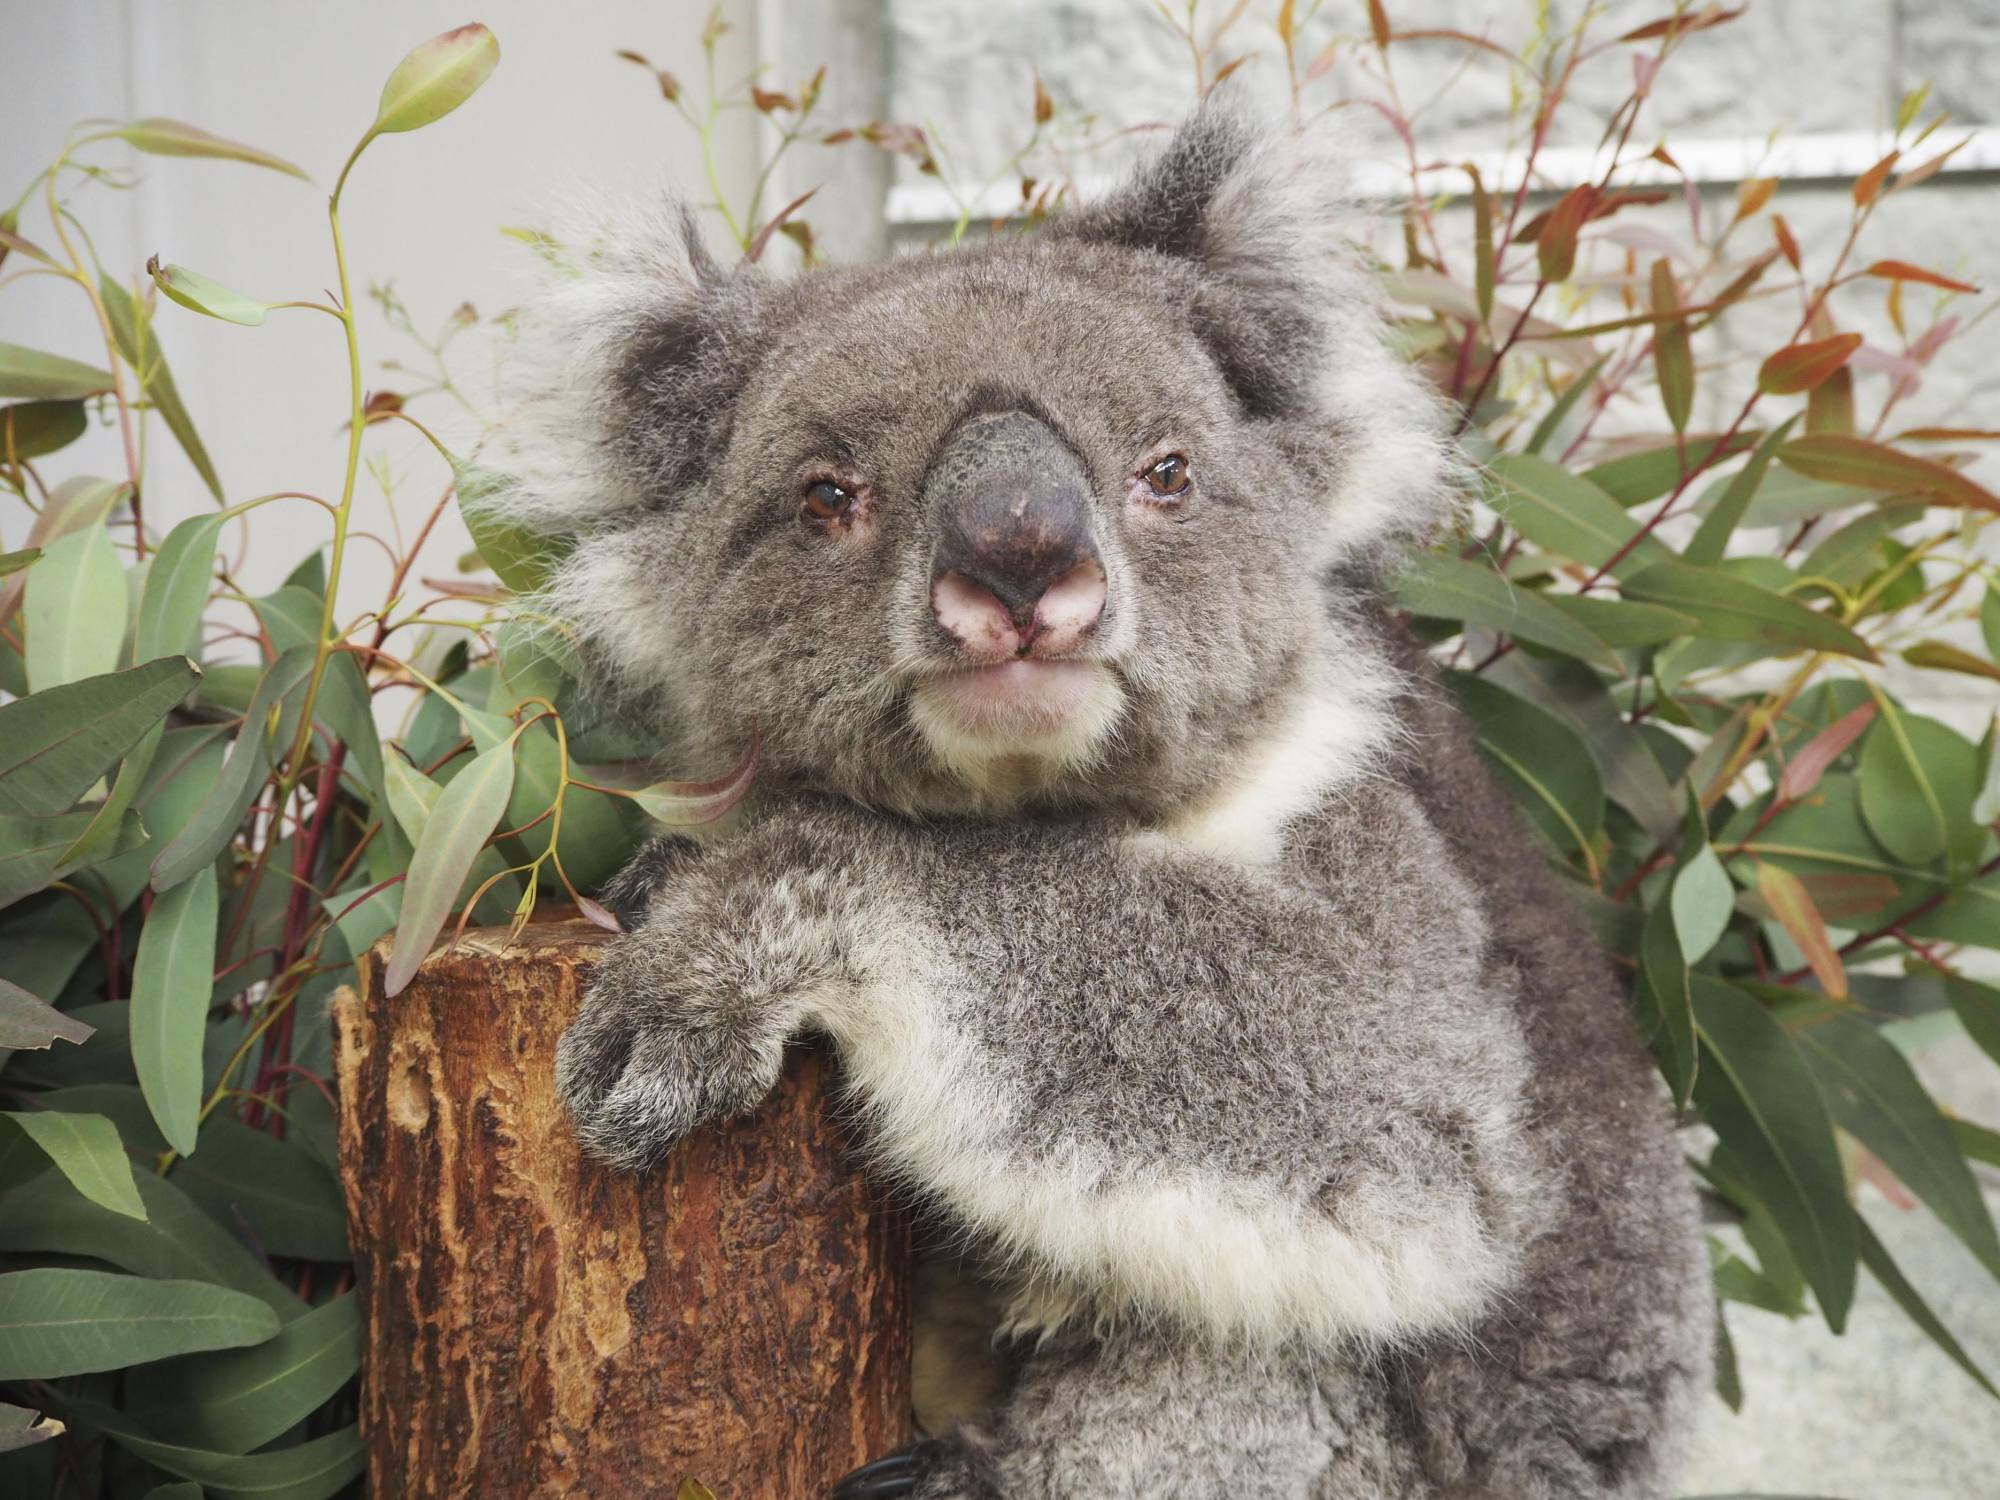 Midori, a 24-year-old female koala recognized by Guinness World Records as the world's oldest ever to be held in captivity, at a zoo in Hyogo Prefecture on Monday   AWAJI FARM PARK ENGLAND HILL / VIA KYODO